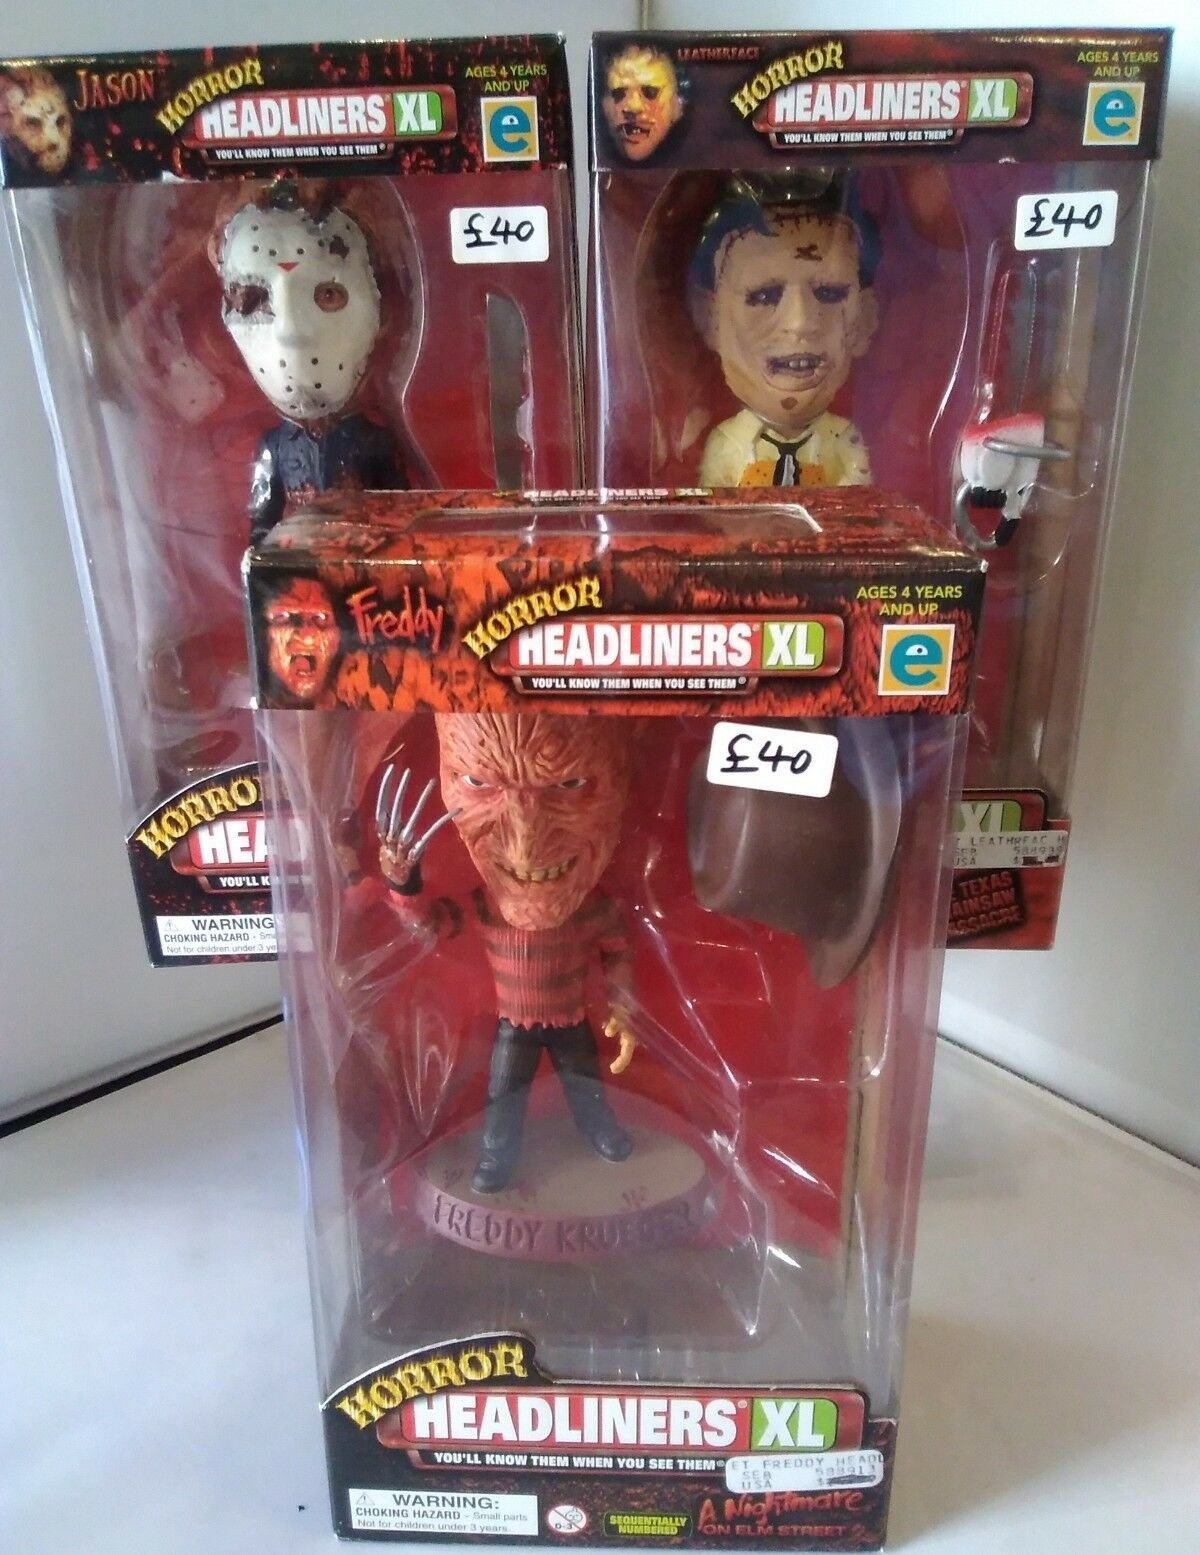 1999 HORROR HEADLINERS XL LEATHERFACE FrotDY JASON FULL SET FIGURES BOXED